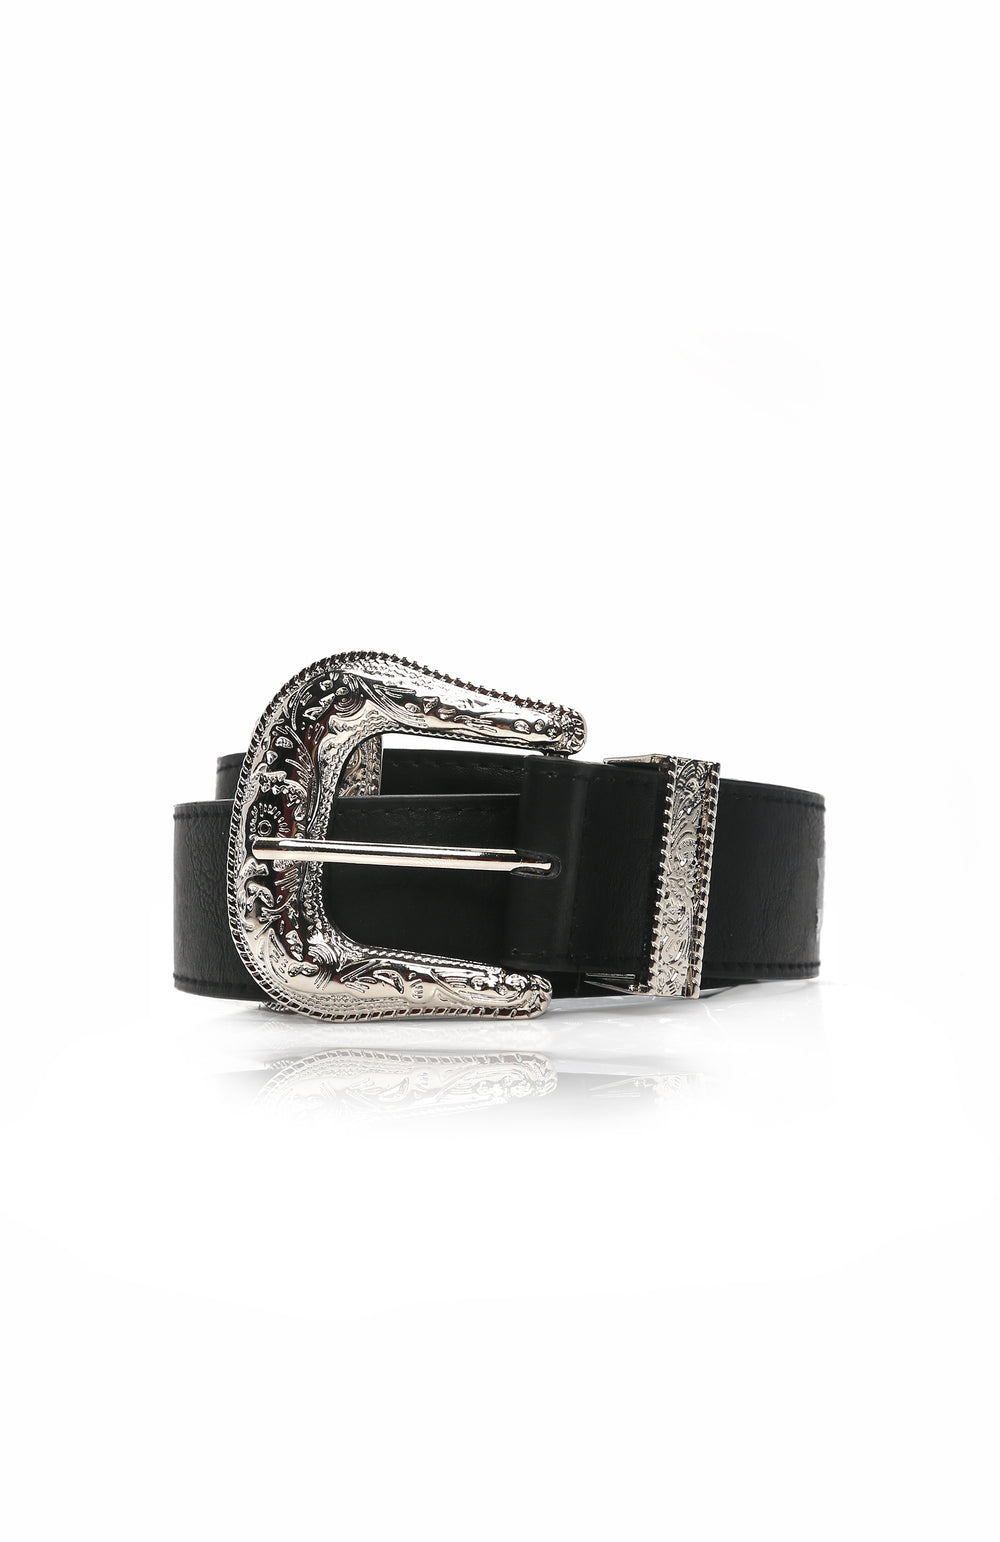 Brianna Double Buckle Belt - Black/Silver